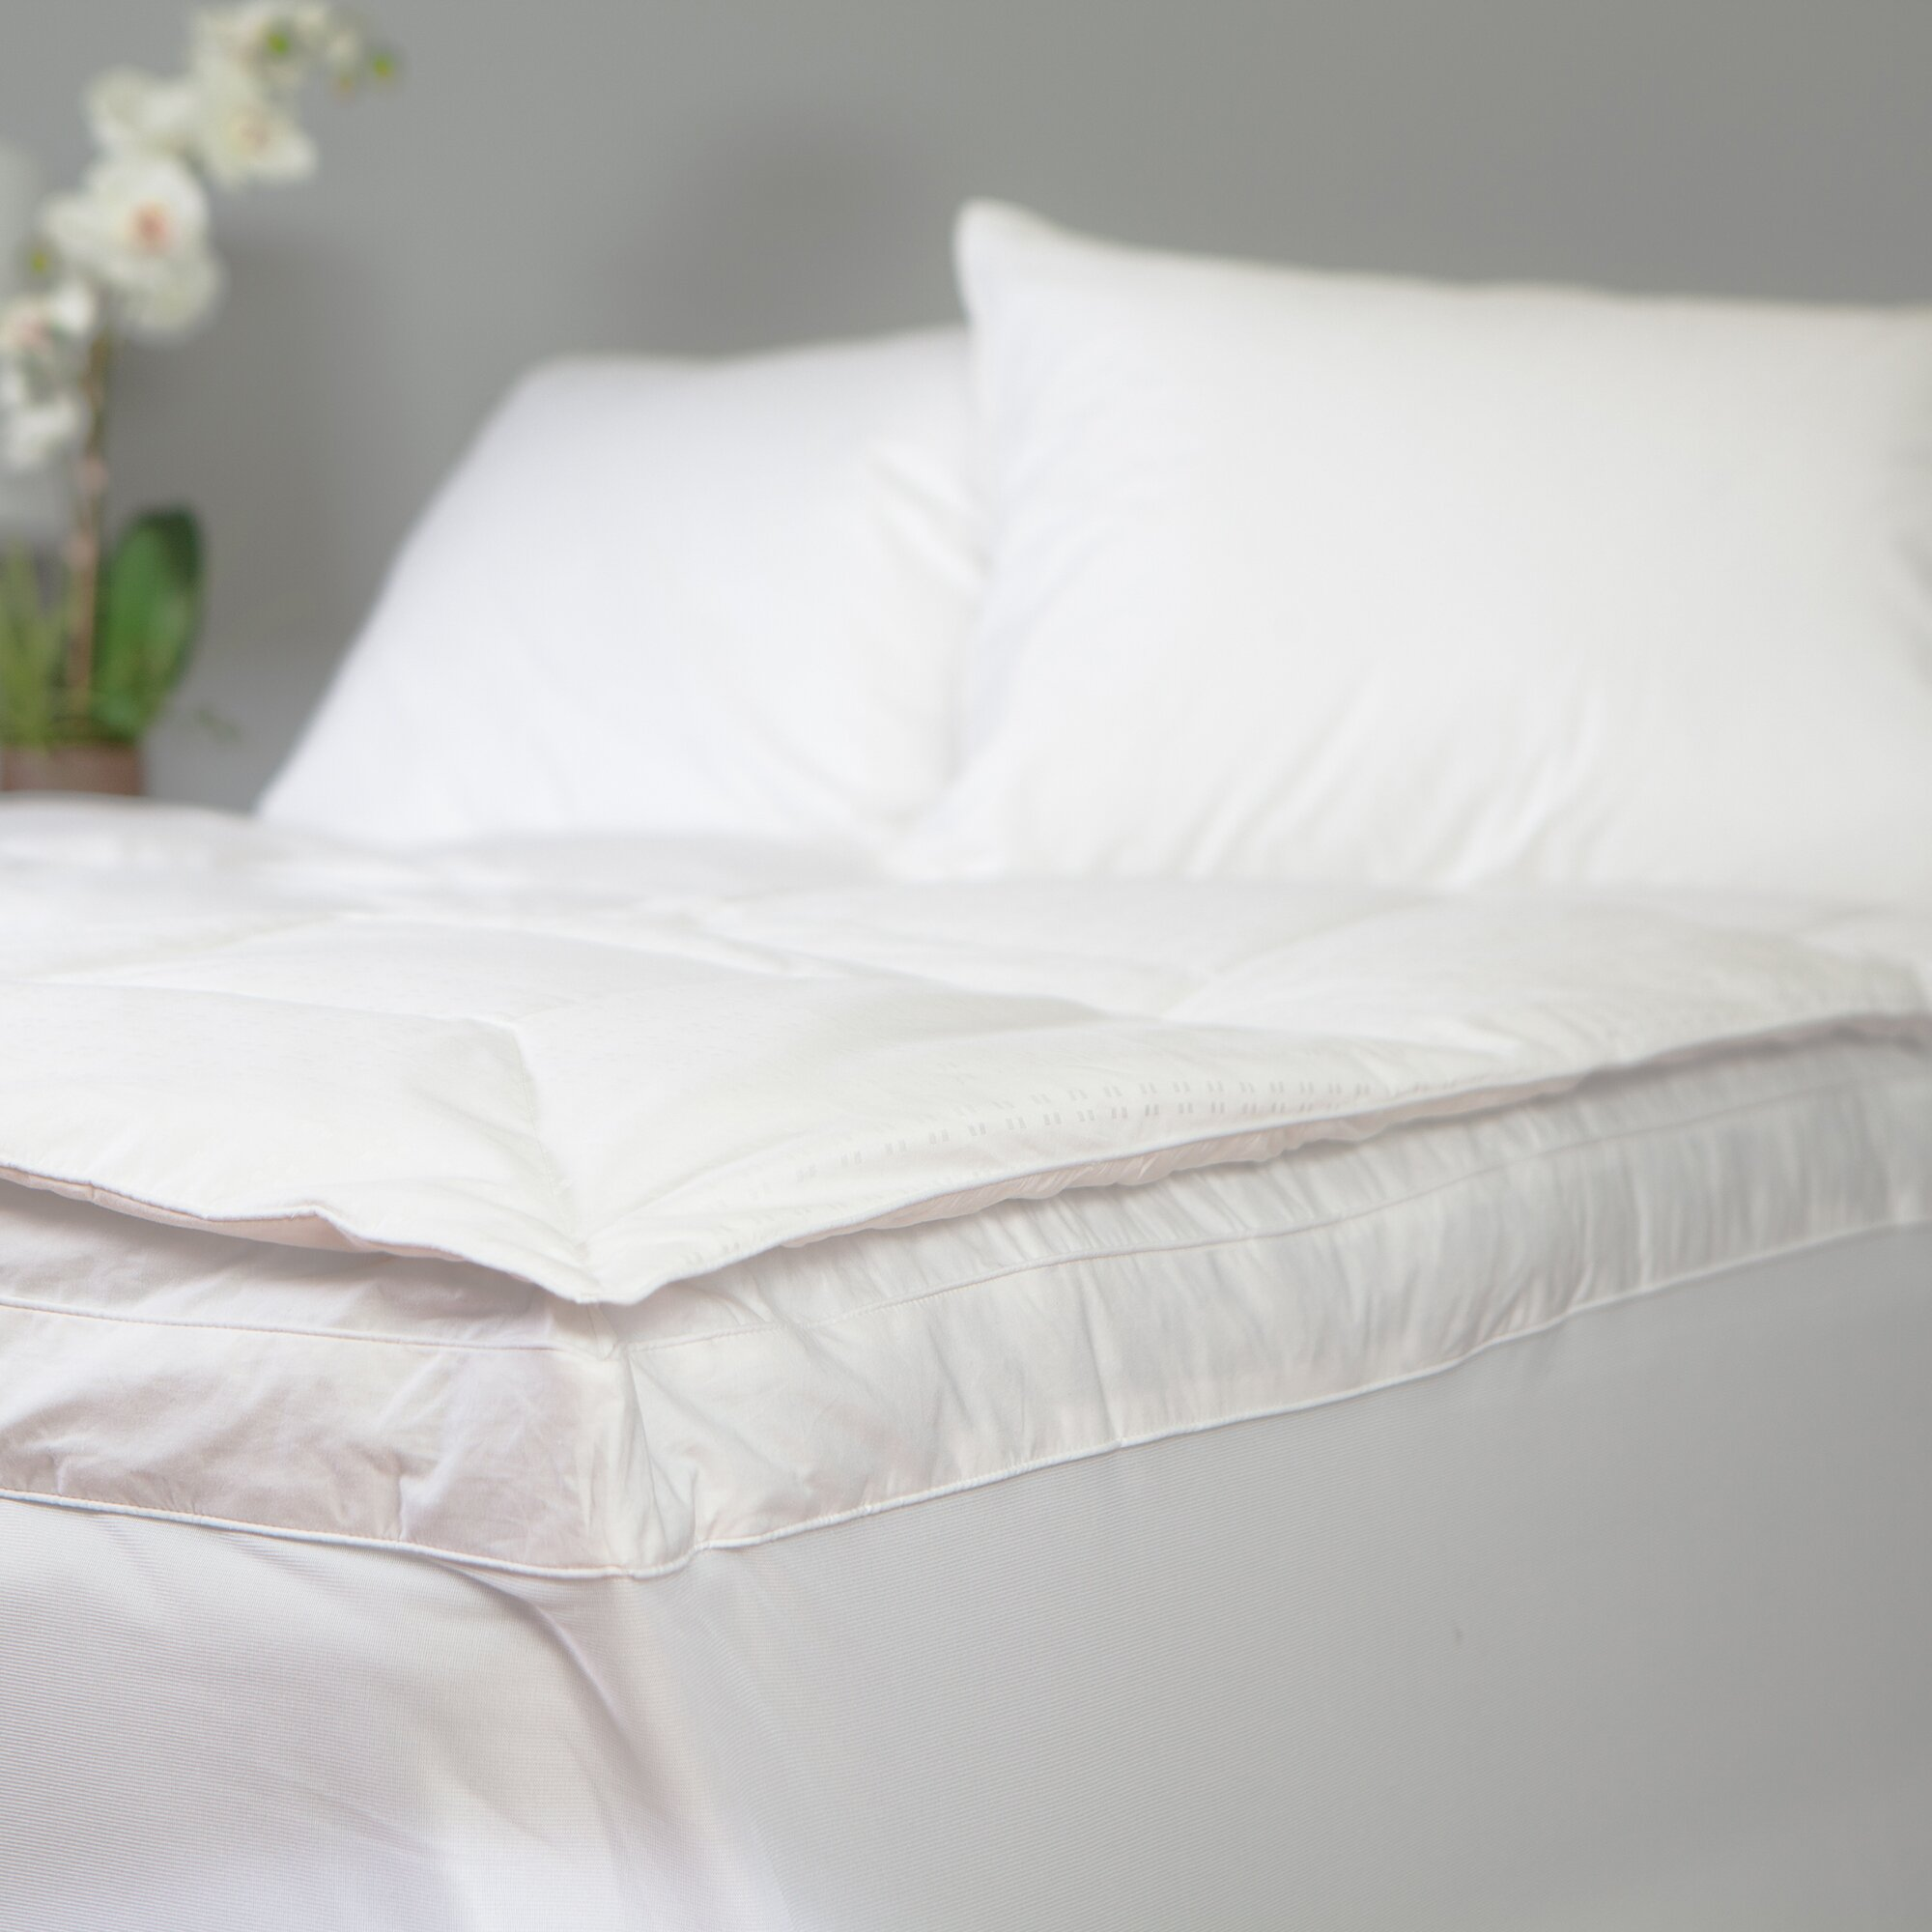 Old fashioned feather bed 52